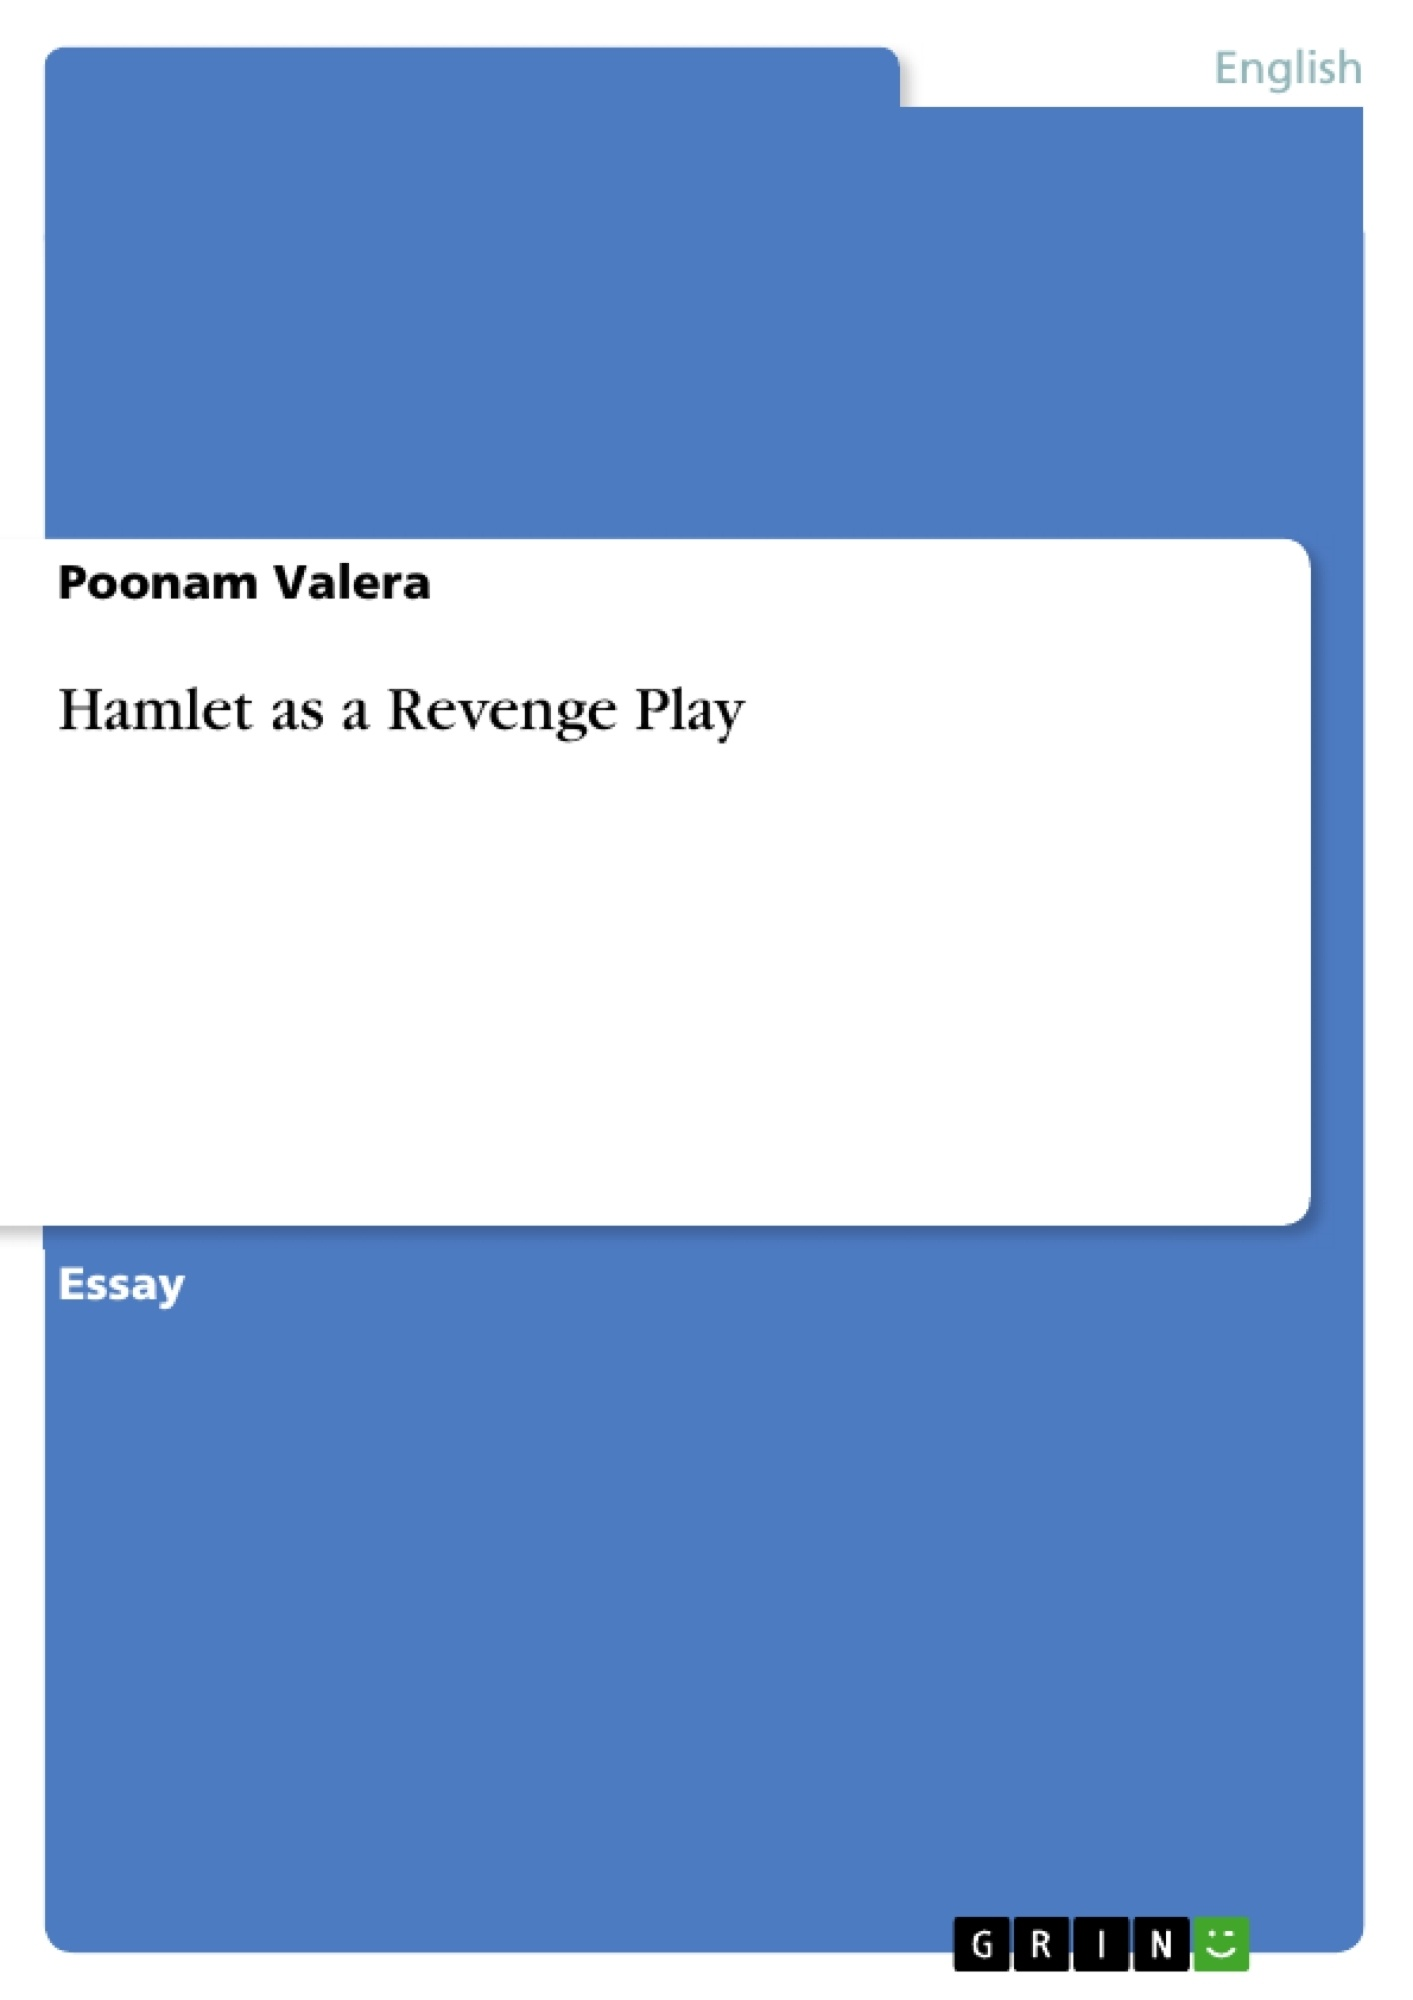 hamlet revenge essay hamlet essay assignment hamlet as a revenge  hamlet as a revenge play publish your master s thesis upload your own papers earn money